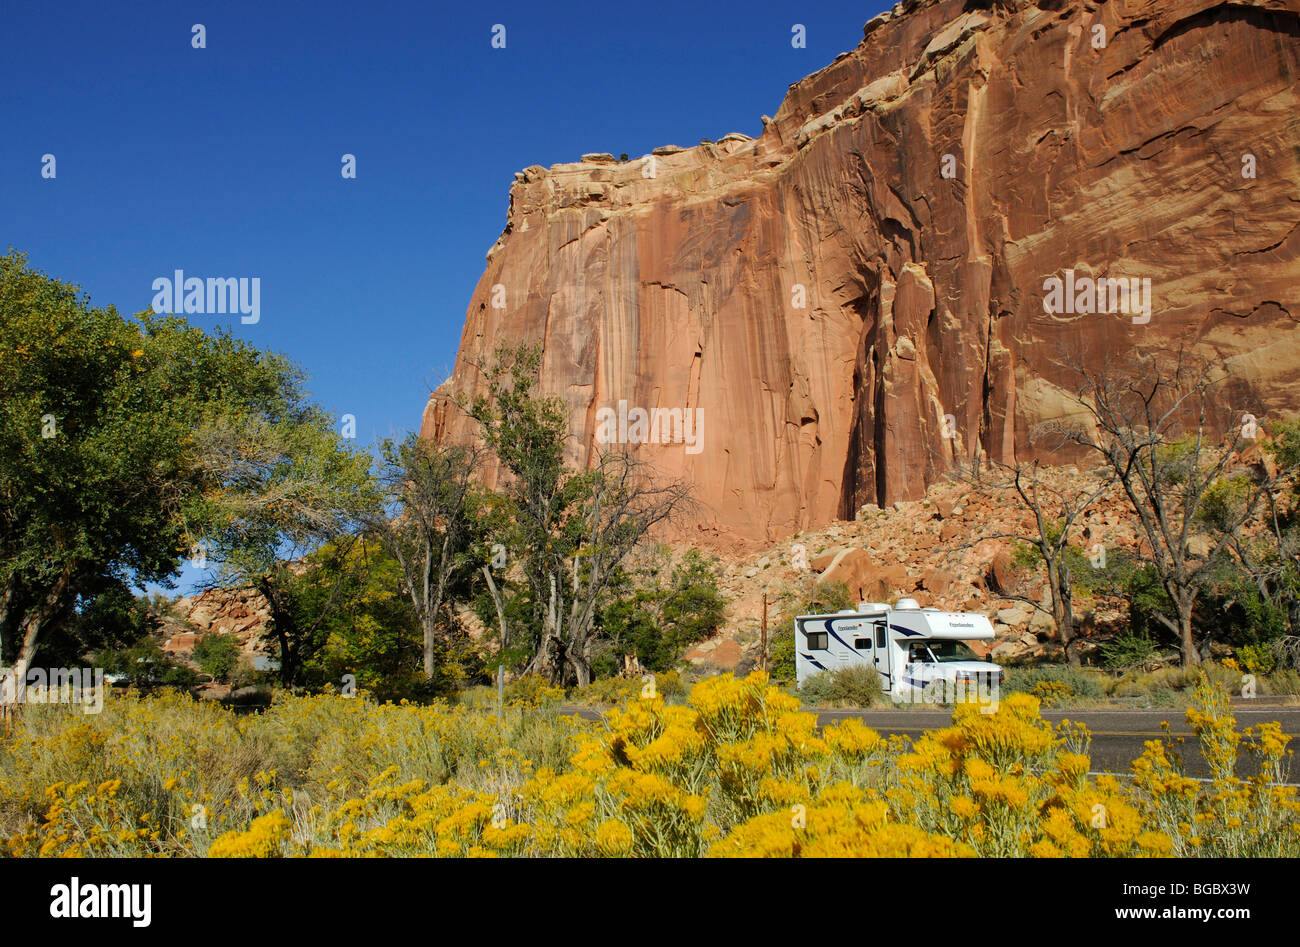 Camper, Castle, Capitol Reef National Park, Utah, USA Stock Photo